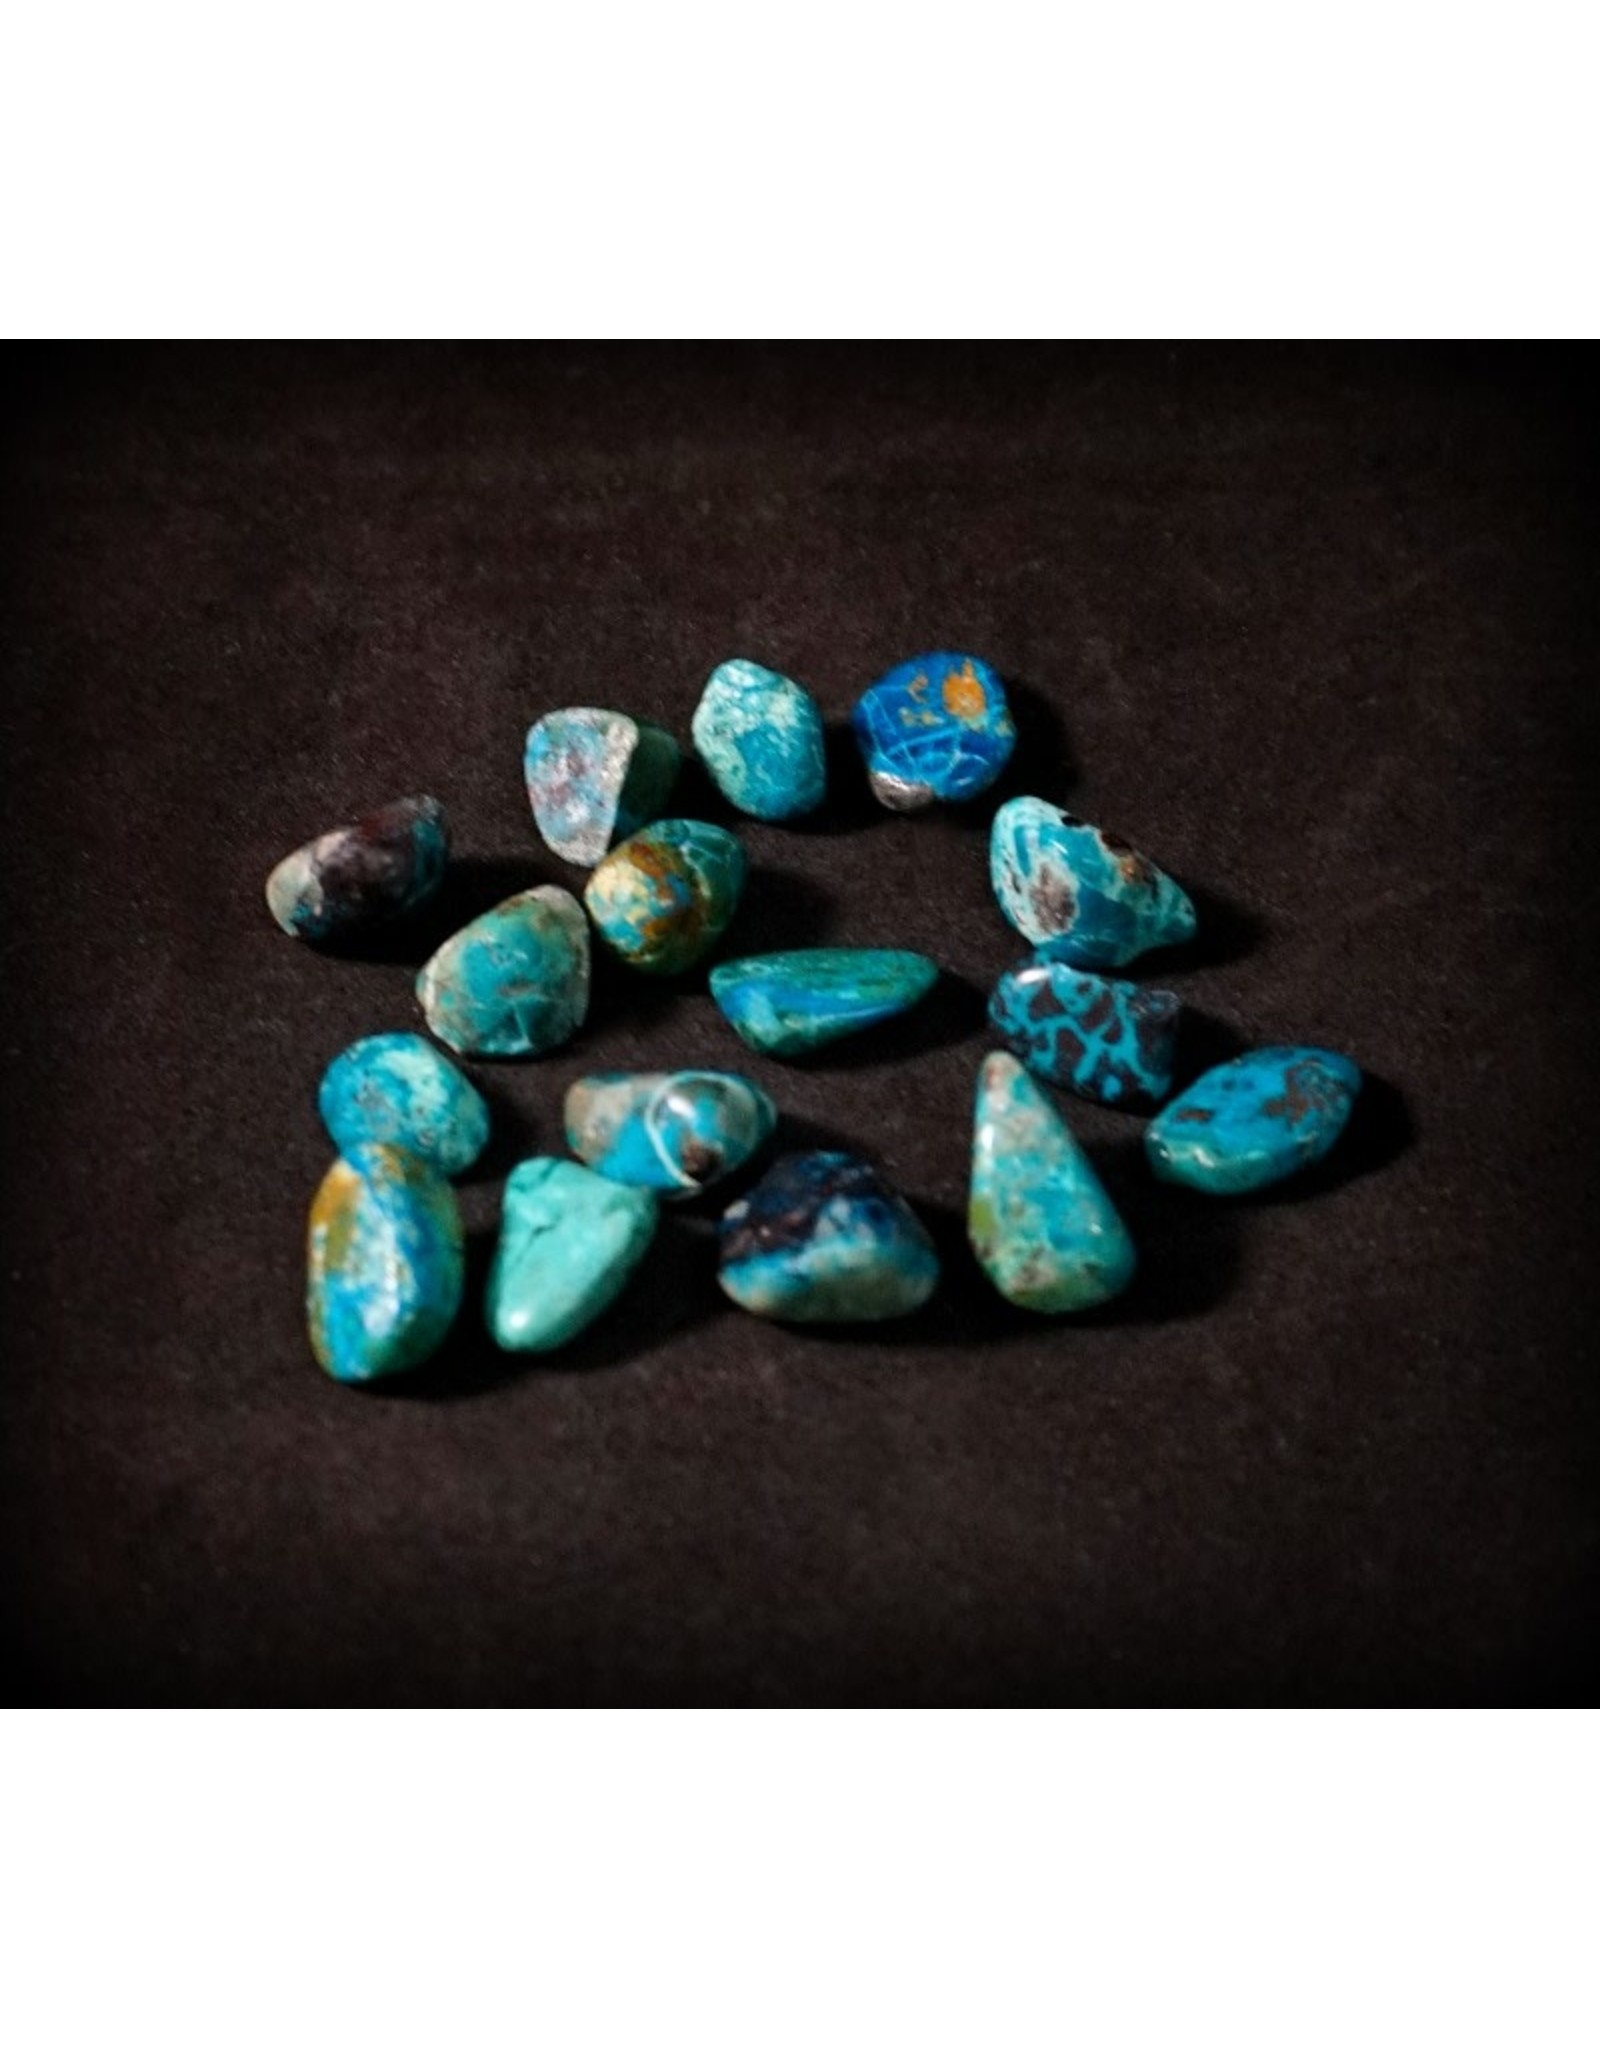 Chrysocolla Small Tumbled Stone